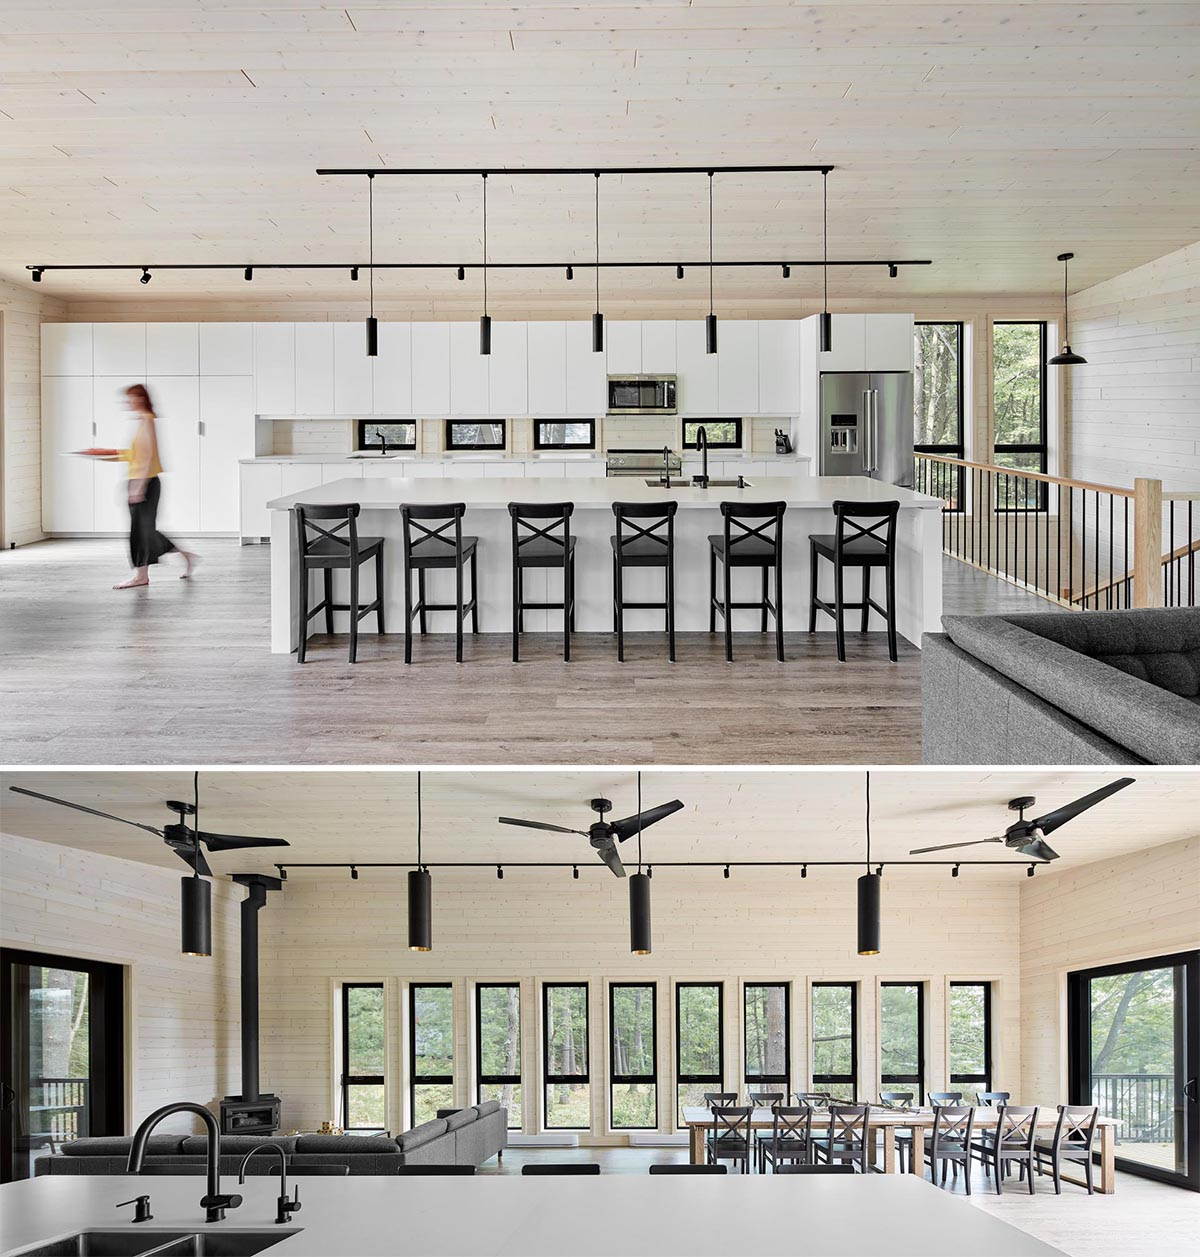 This modern kitchen includes all-white cabinets that are contrasted by the black lighting and black stools at the large island.